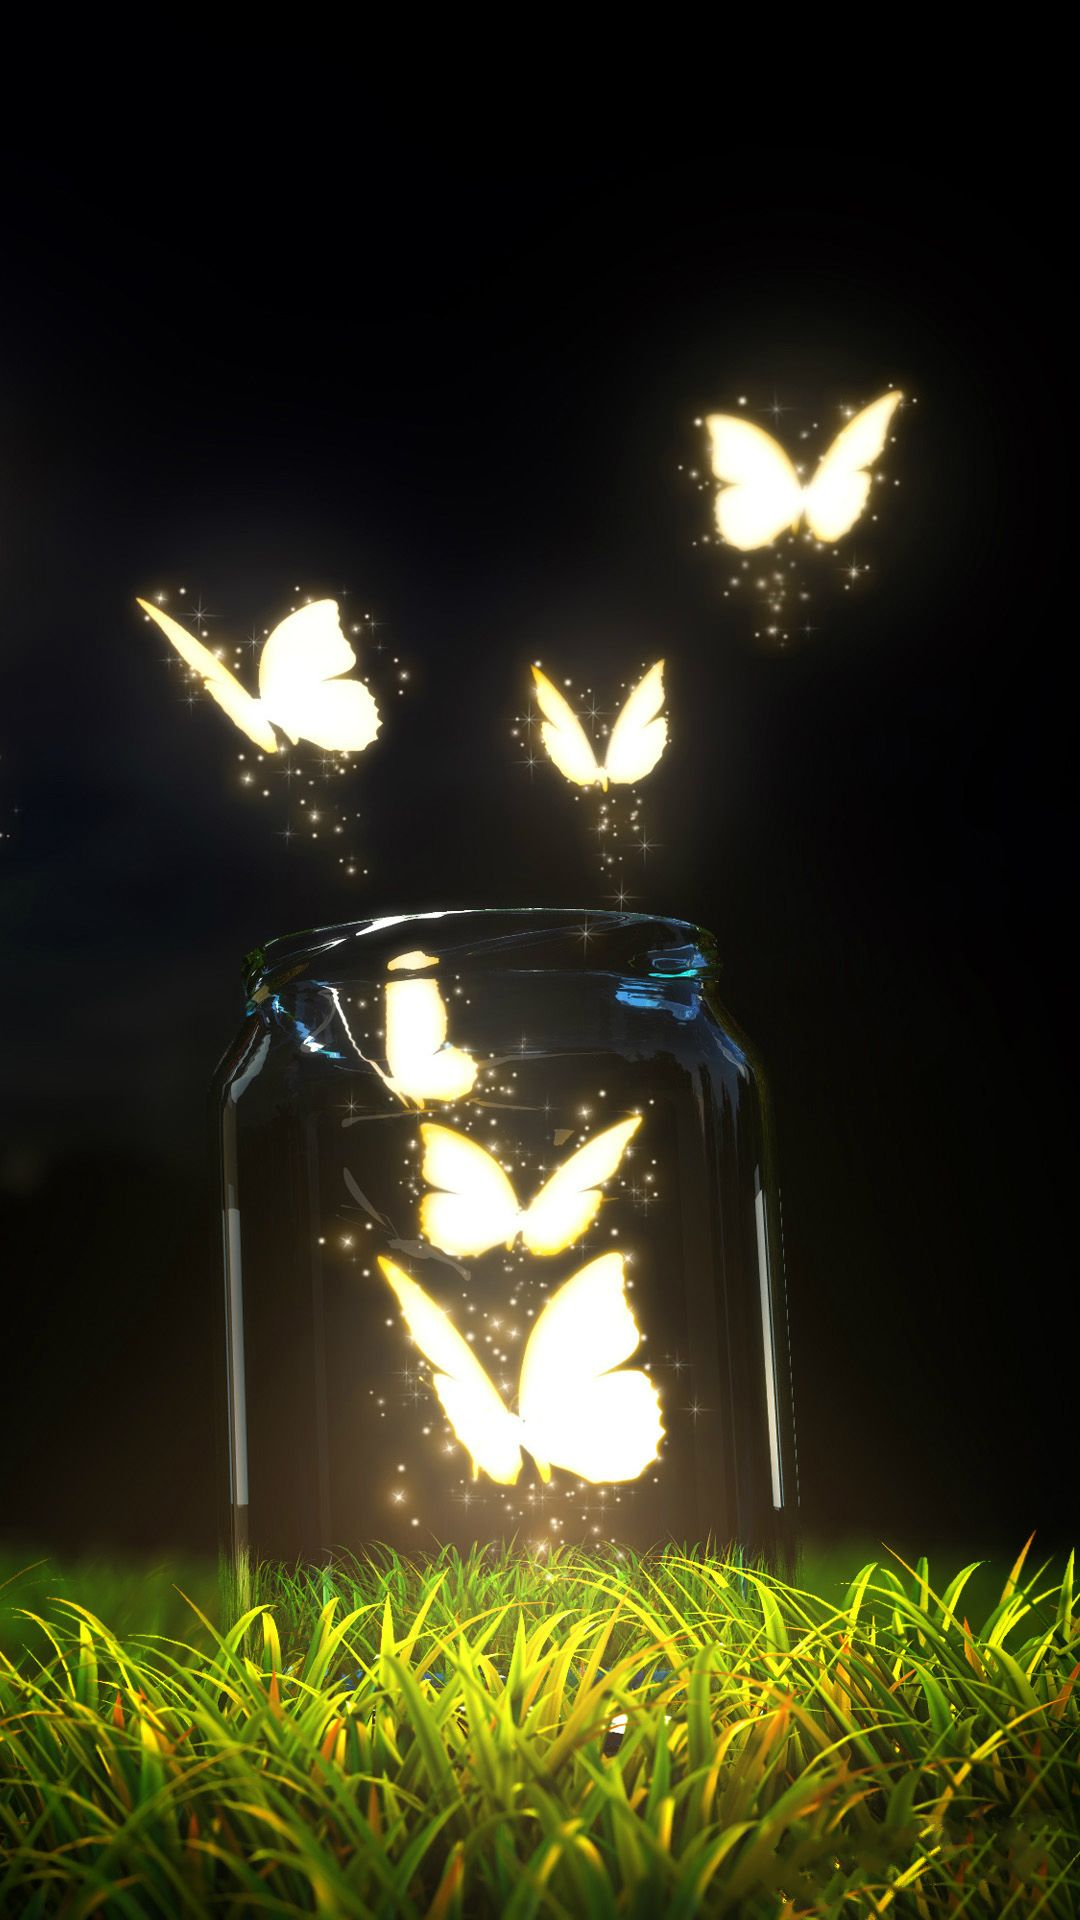 Fantasy Butterfly Jar Iphone 6 Plus Wallpaper Iphone Wallpaper Lights Butterfly Wallpaper Iphone Iphone Wallpaper